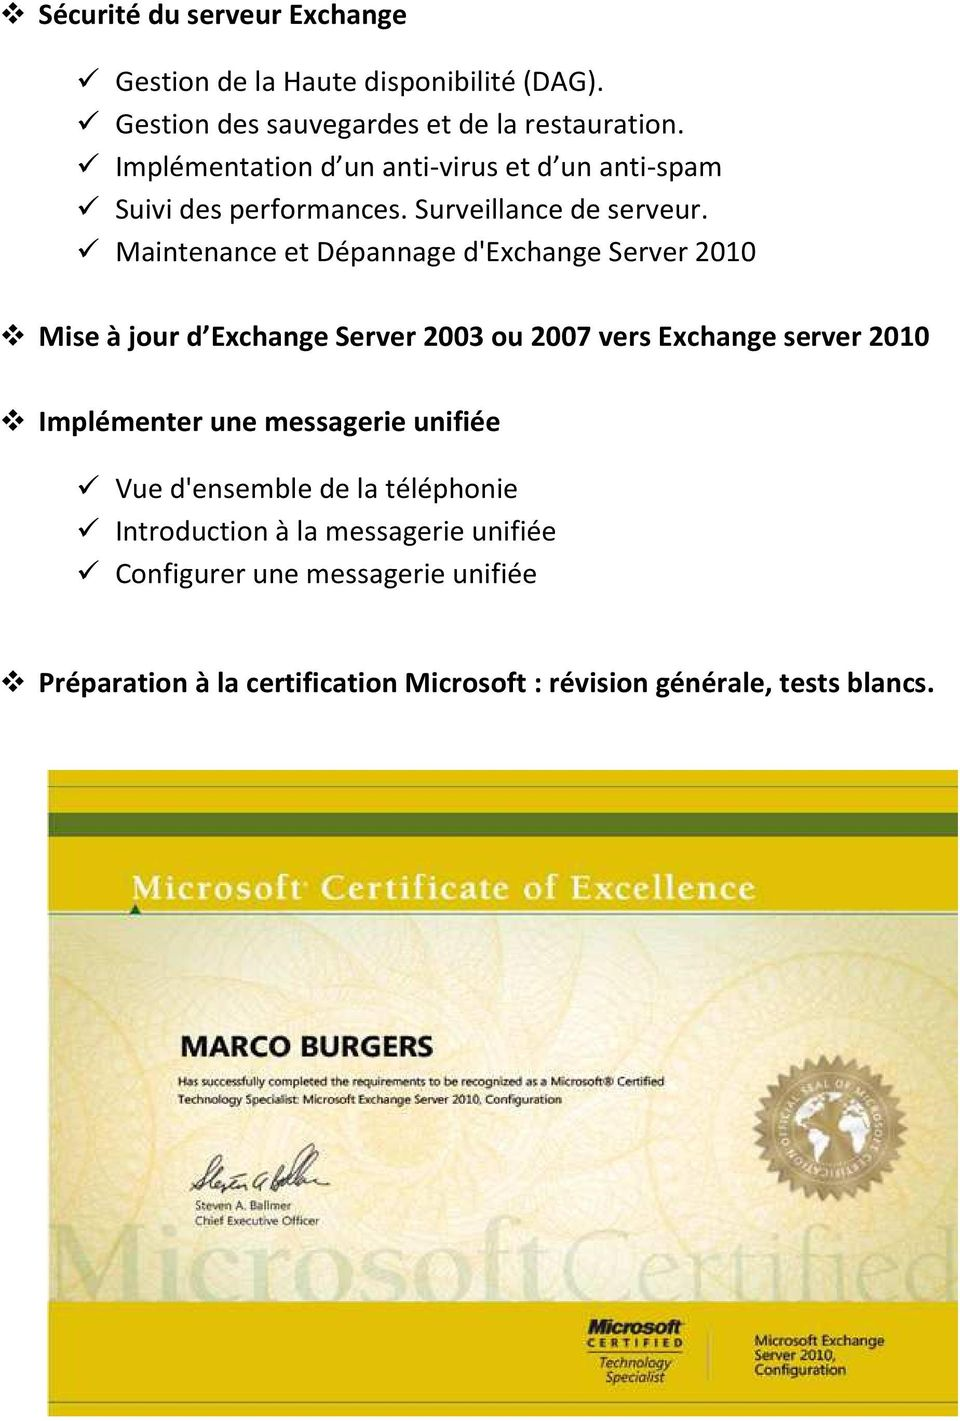 Maintenance et Dépannage d'exchange Server 2010 Mise à jour d Exchange Server 2003 ou 2007 vers Exchange server 2010 Implémenter une